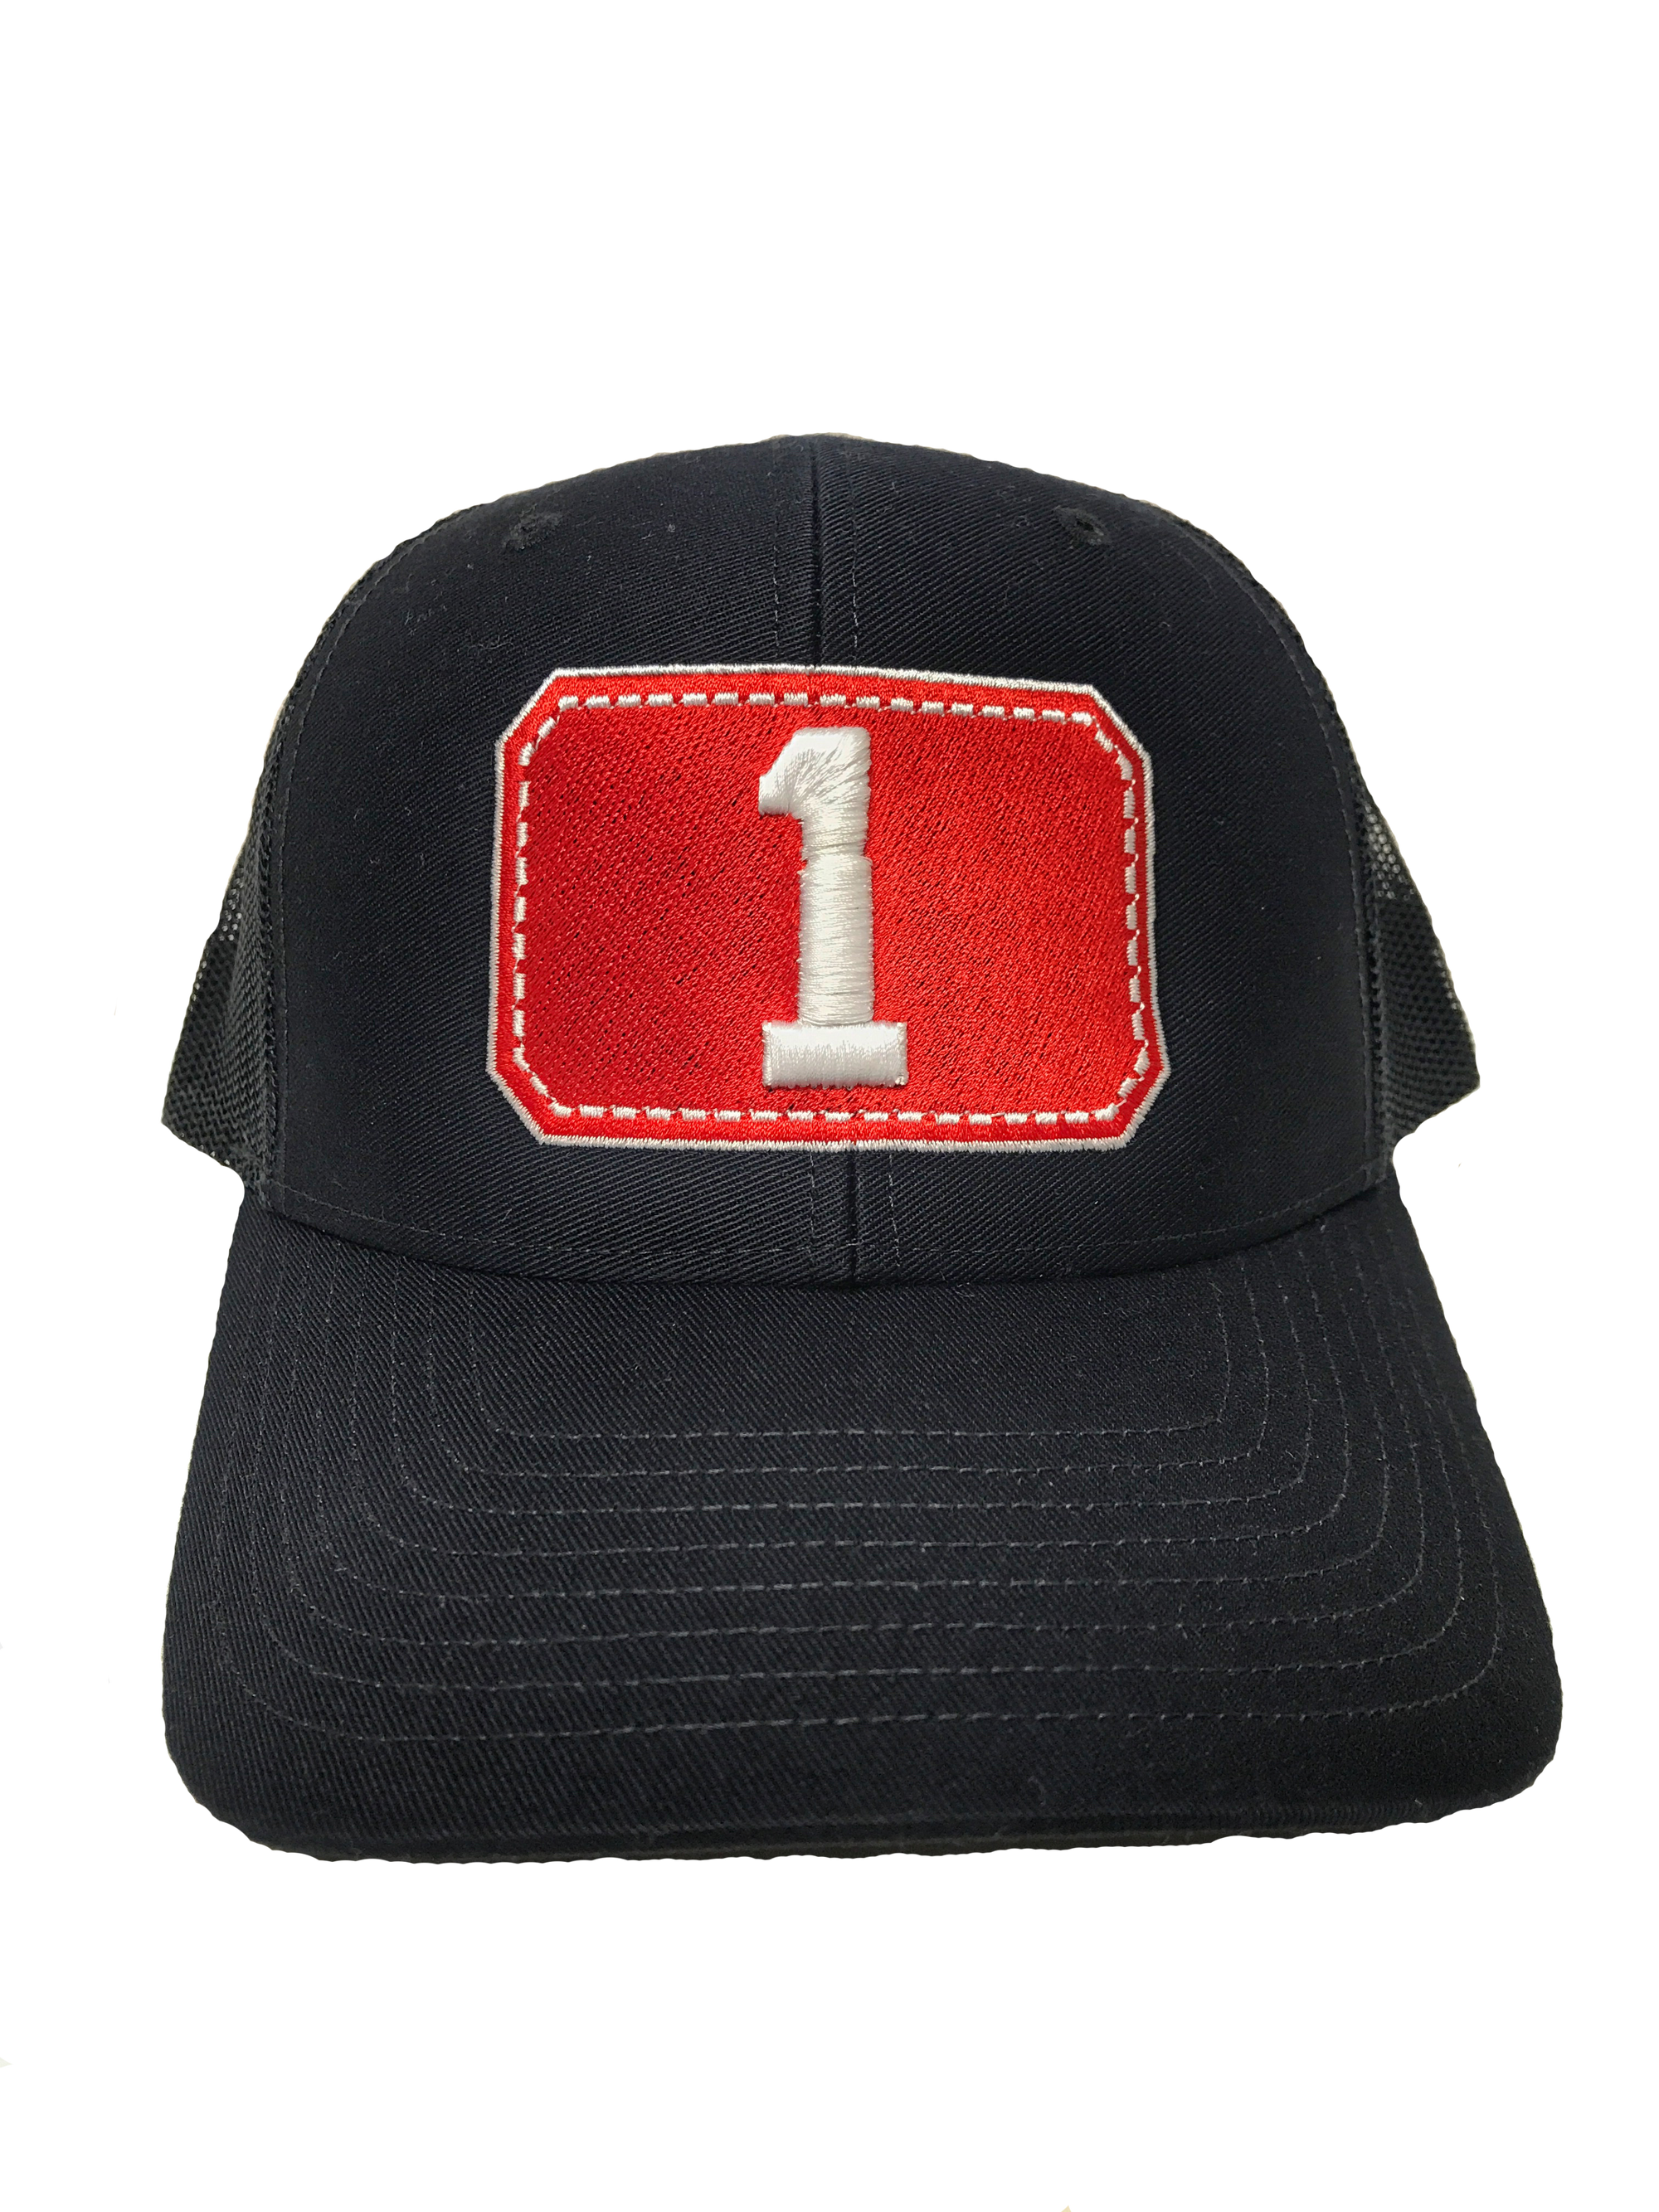 Richardson 112 Passport Snapback